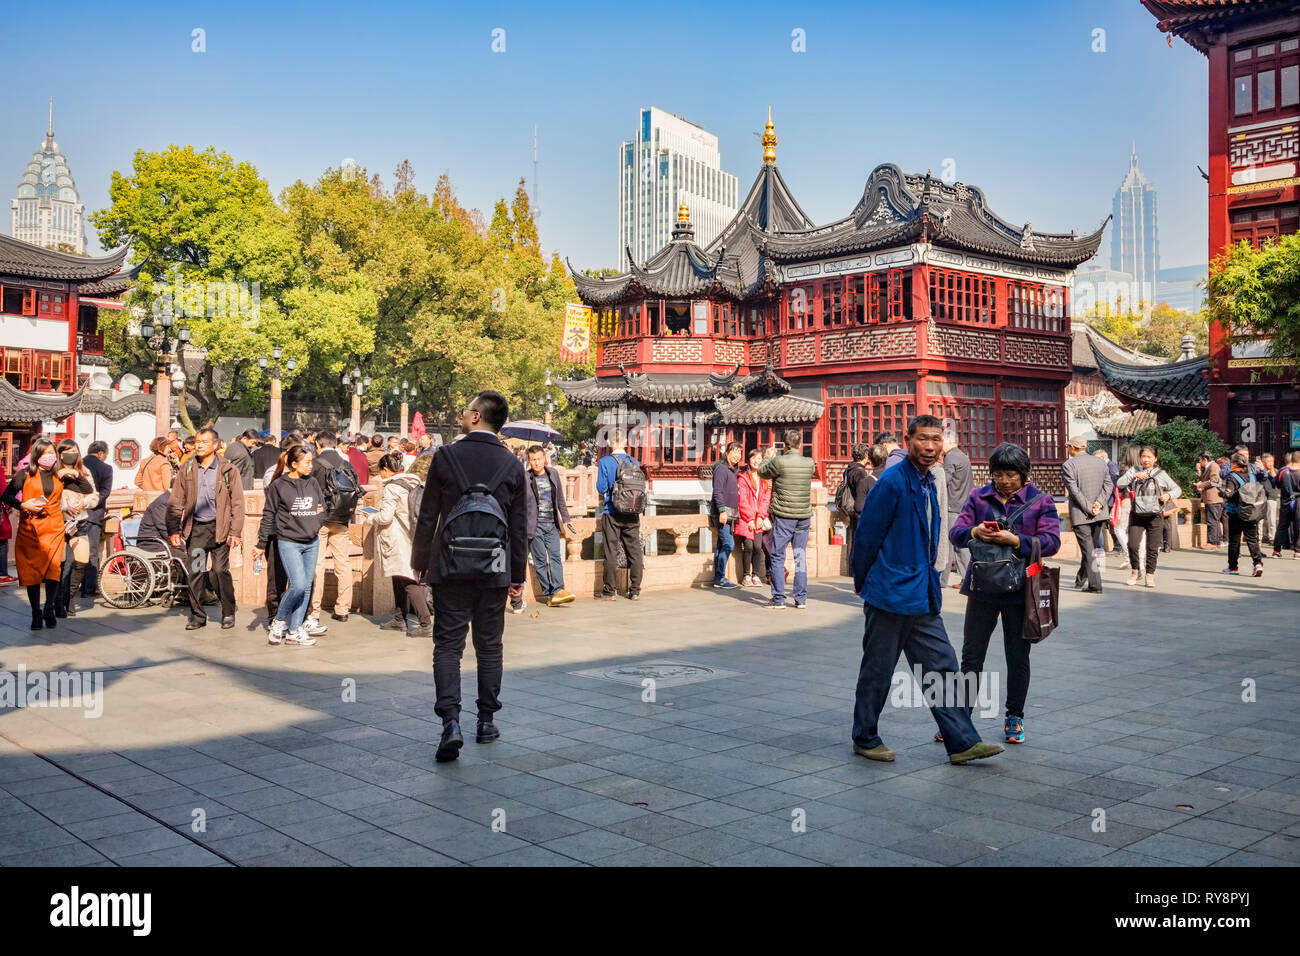 29 November 2018: Shanghai, China - Scene in the Old Town shopping area, a major visitor attraction. Stock Photo